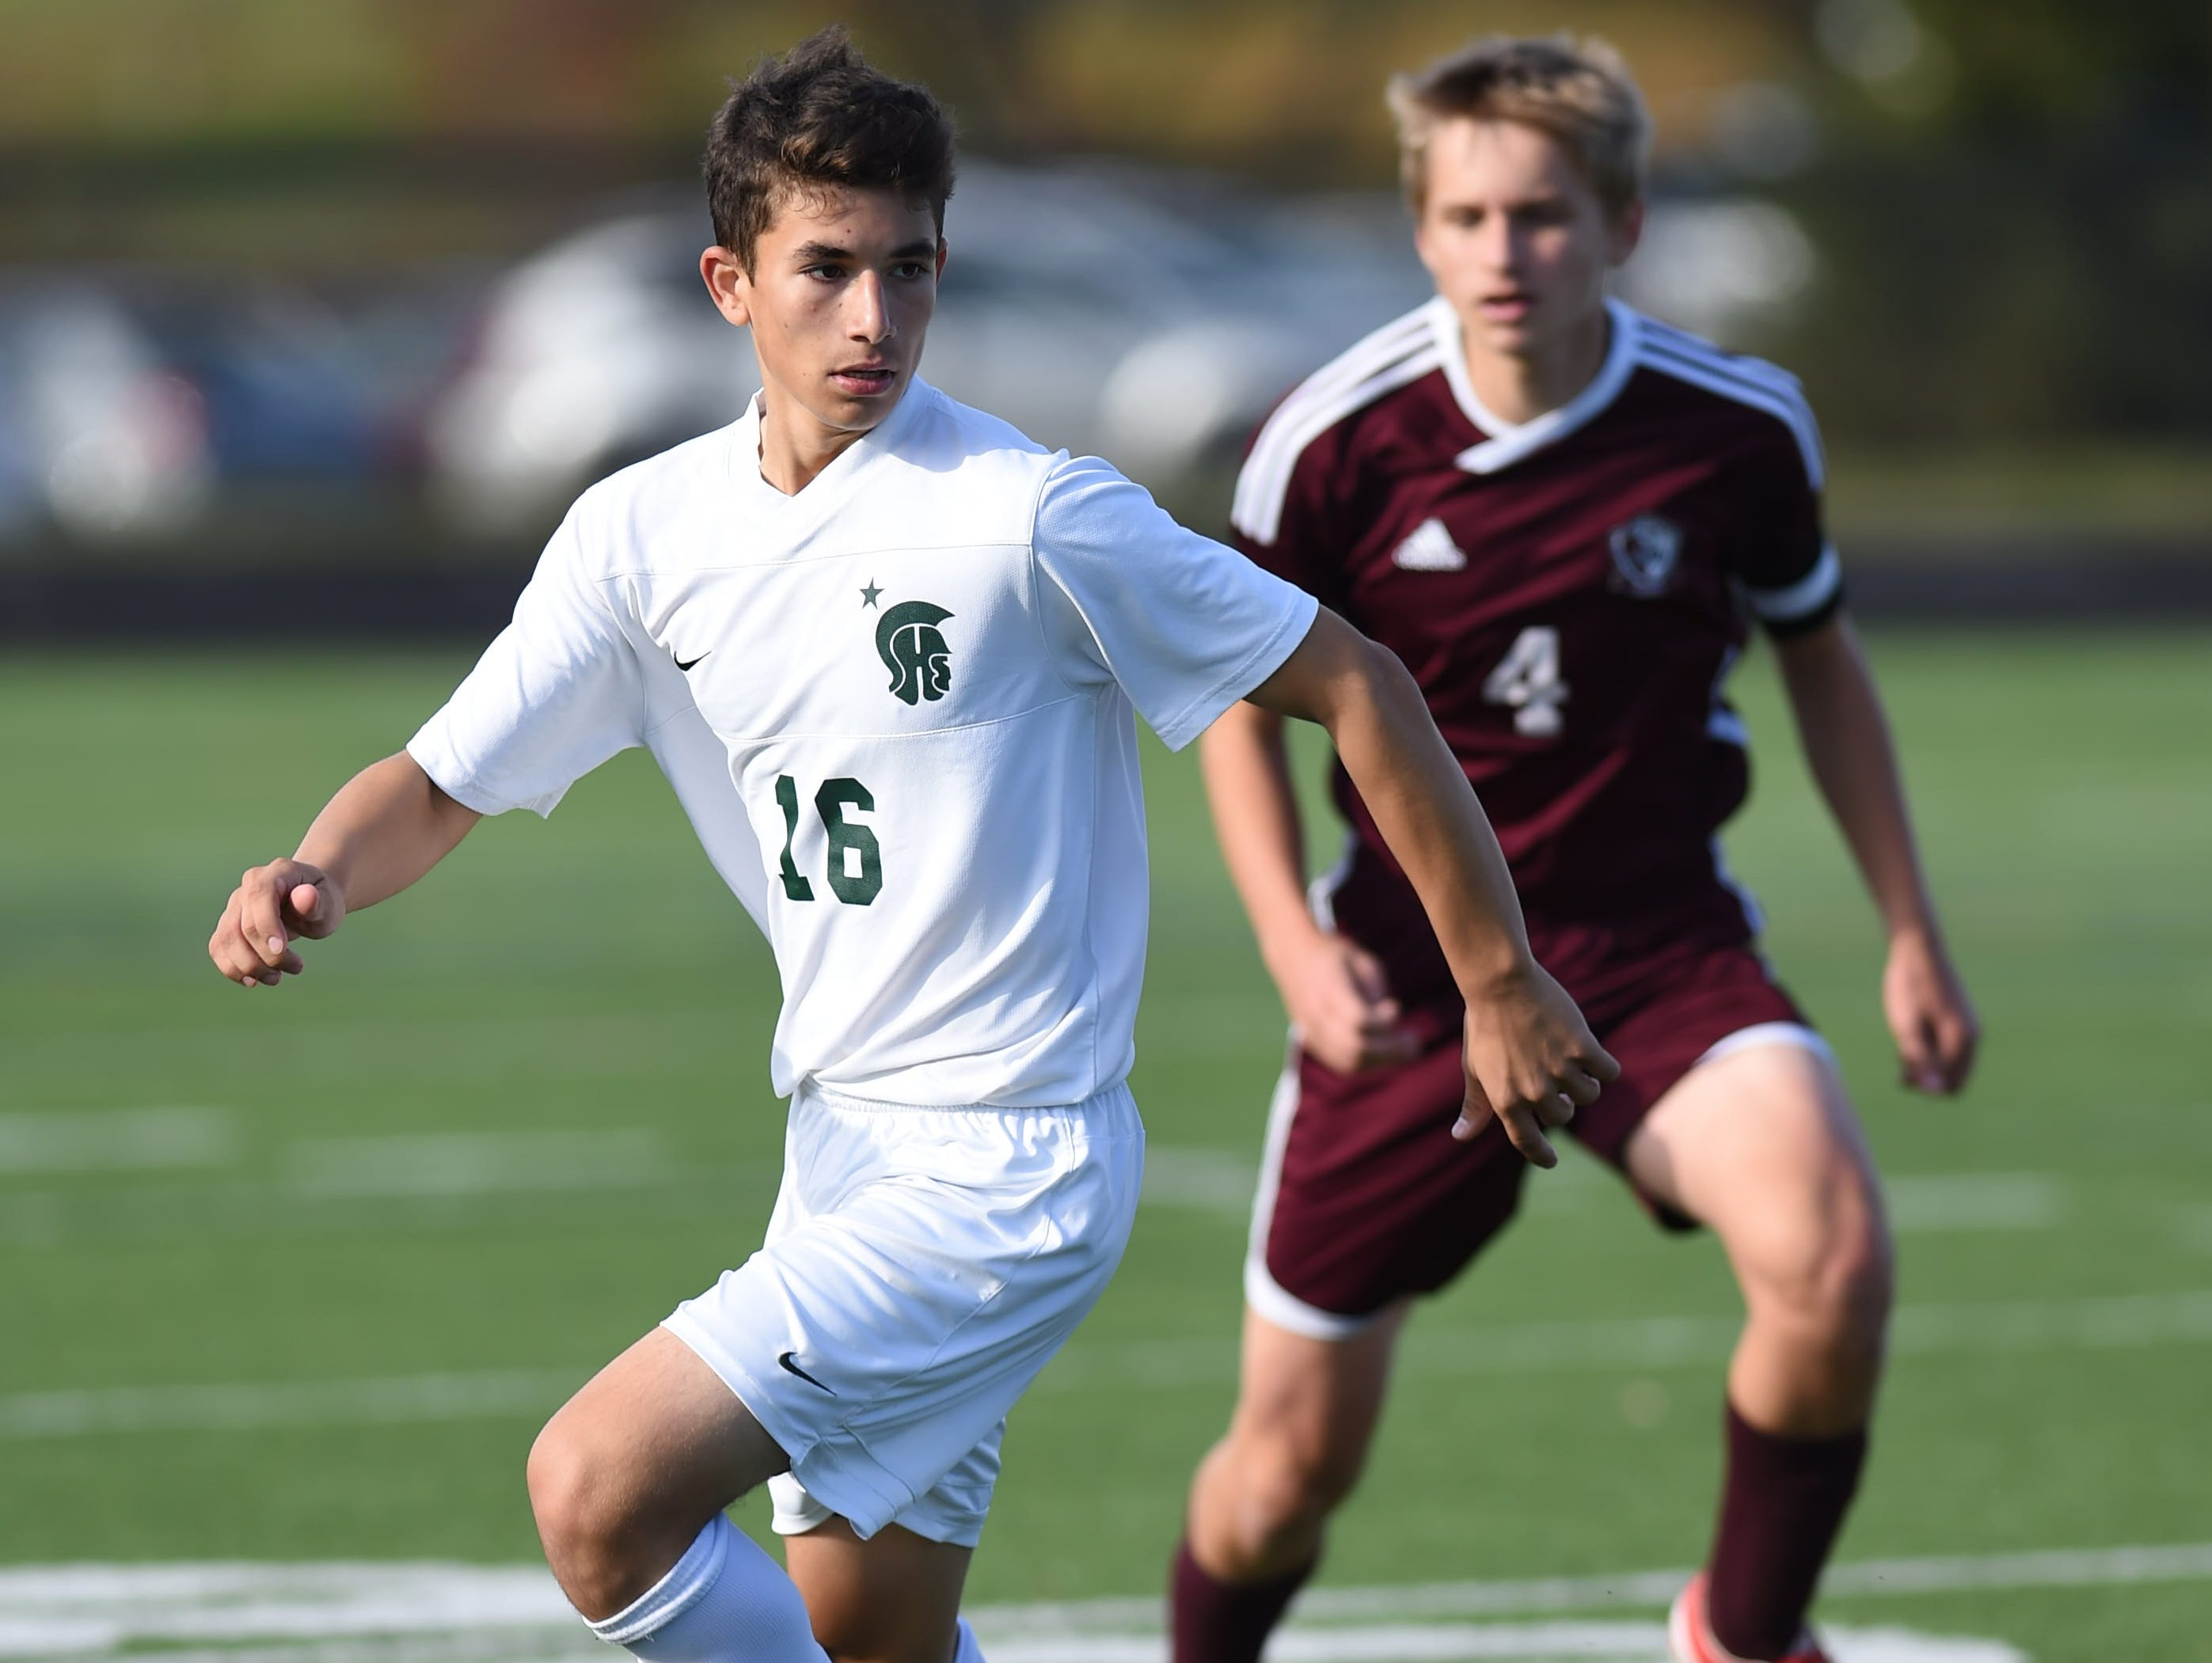 Spackenkill's Andrew Moreira looks for a teammate to pass the ball to as O'Neill's Aleks Rosenbaum covers him during the Section 9 Class B final held in Marlboro on Saturday.